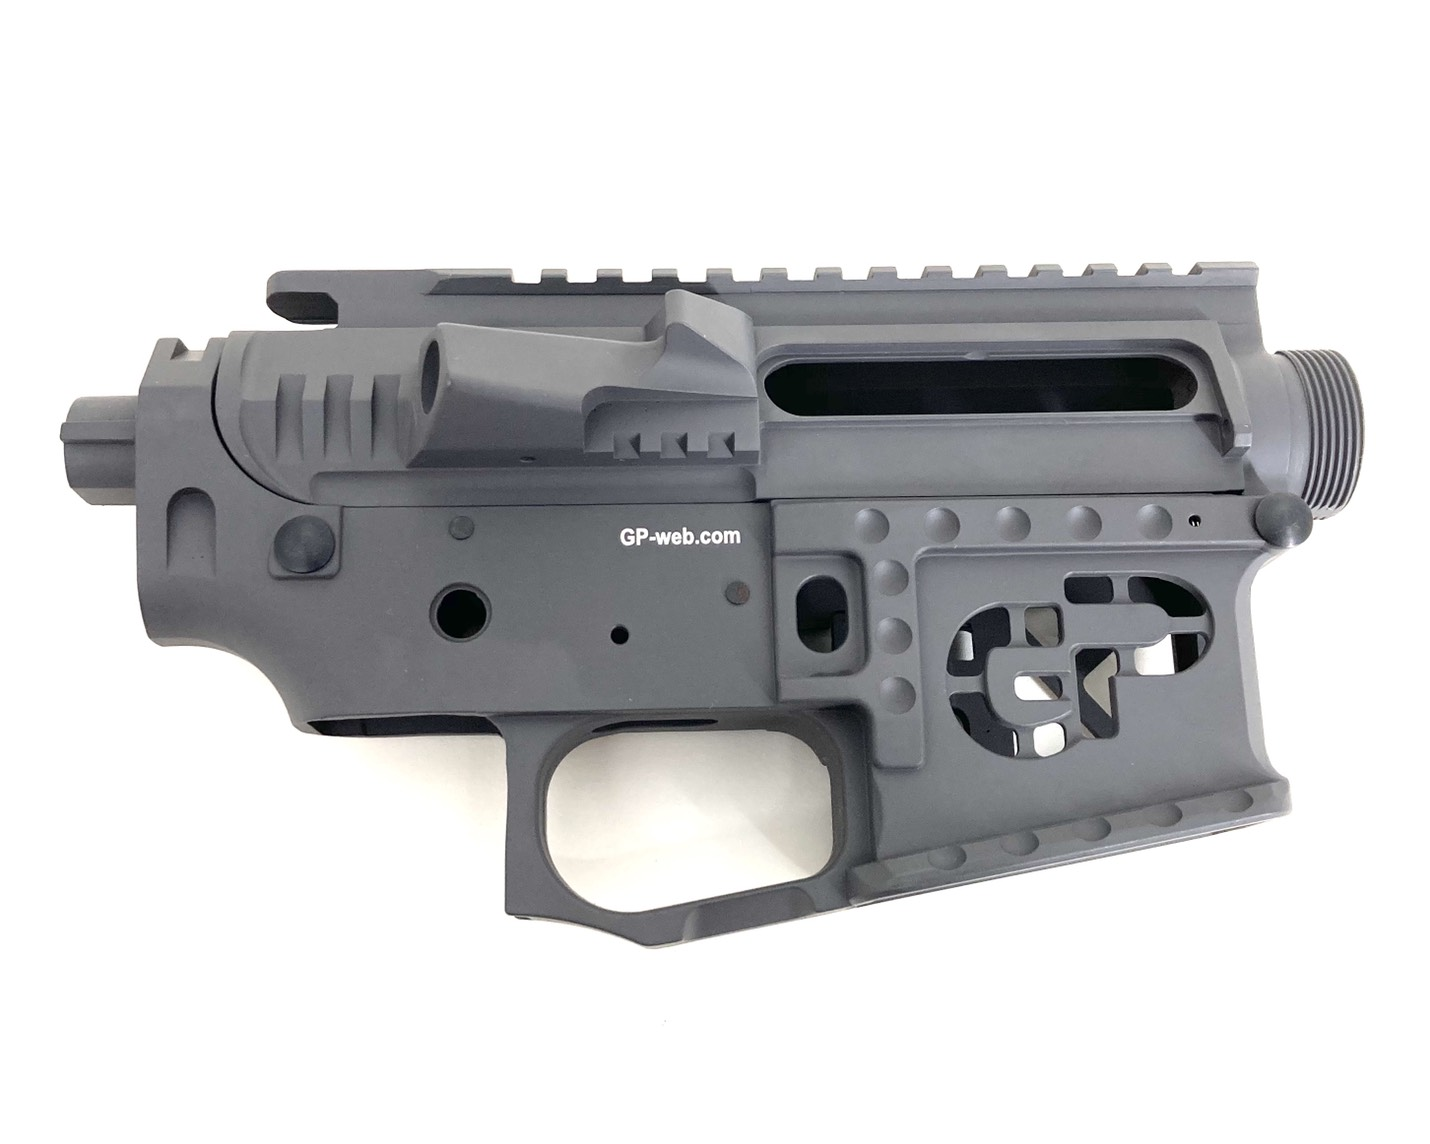 G&P GP-MEB022GY Signature Receiver for Tokyo Marui M4 / M16 & G&P FRS Series - Gray